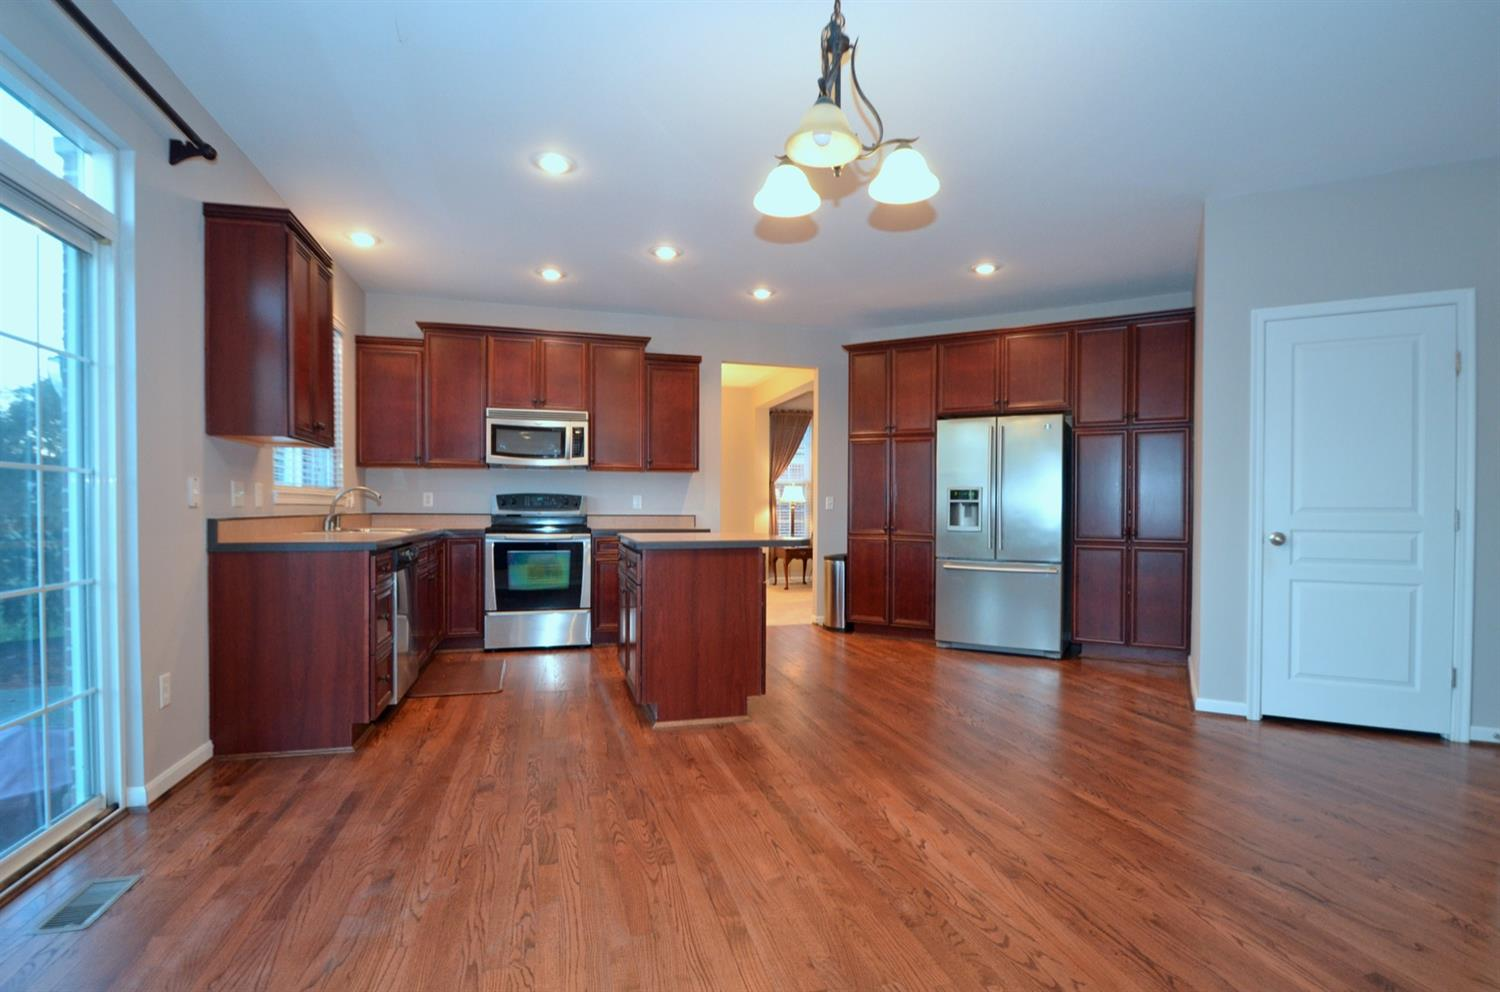 Stainless steel appliances including a large fridge and plenty of storage and pantry space sit atop beautifully refinished hardwood oak flooring.